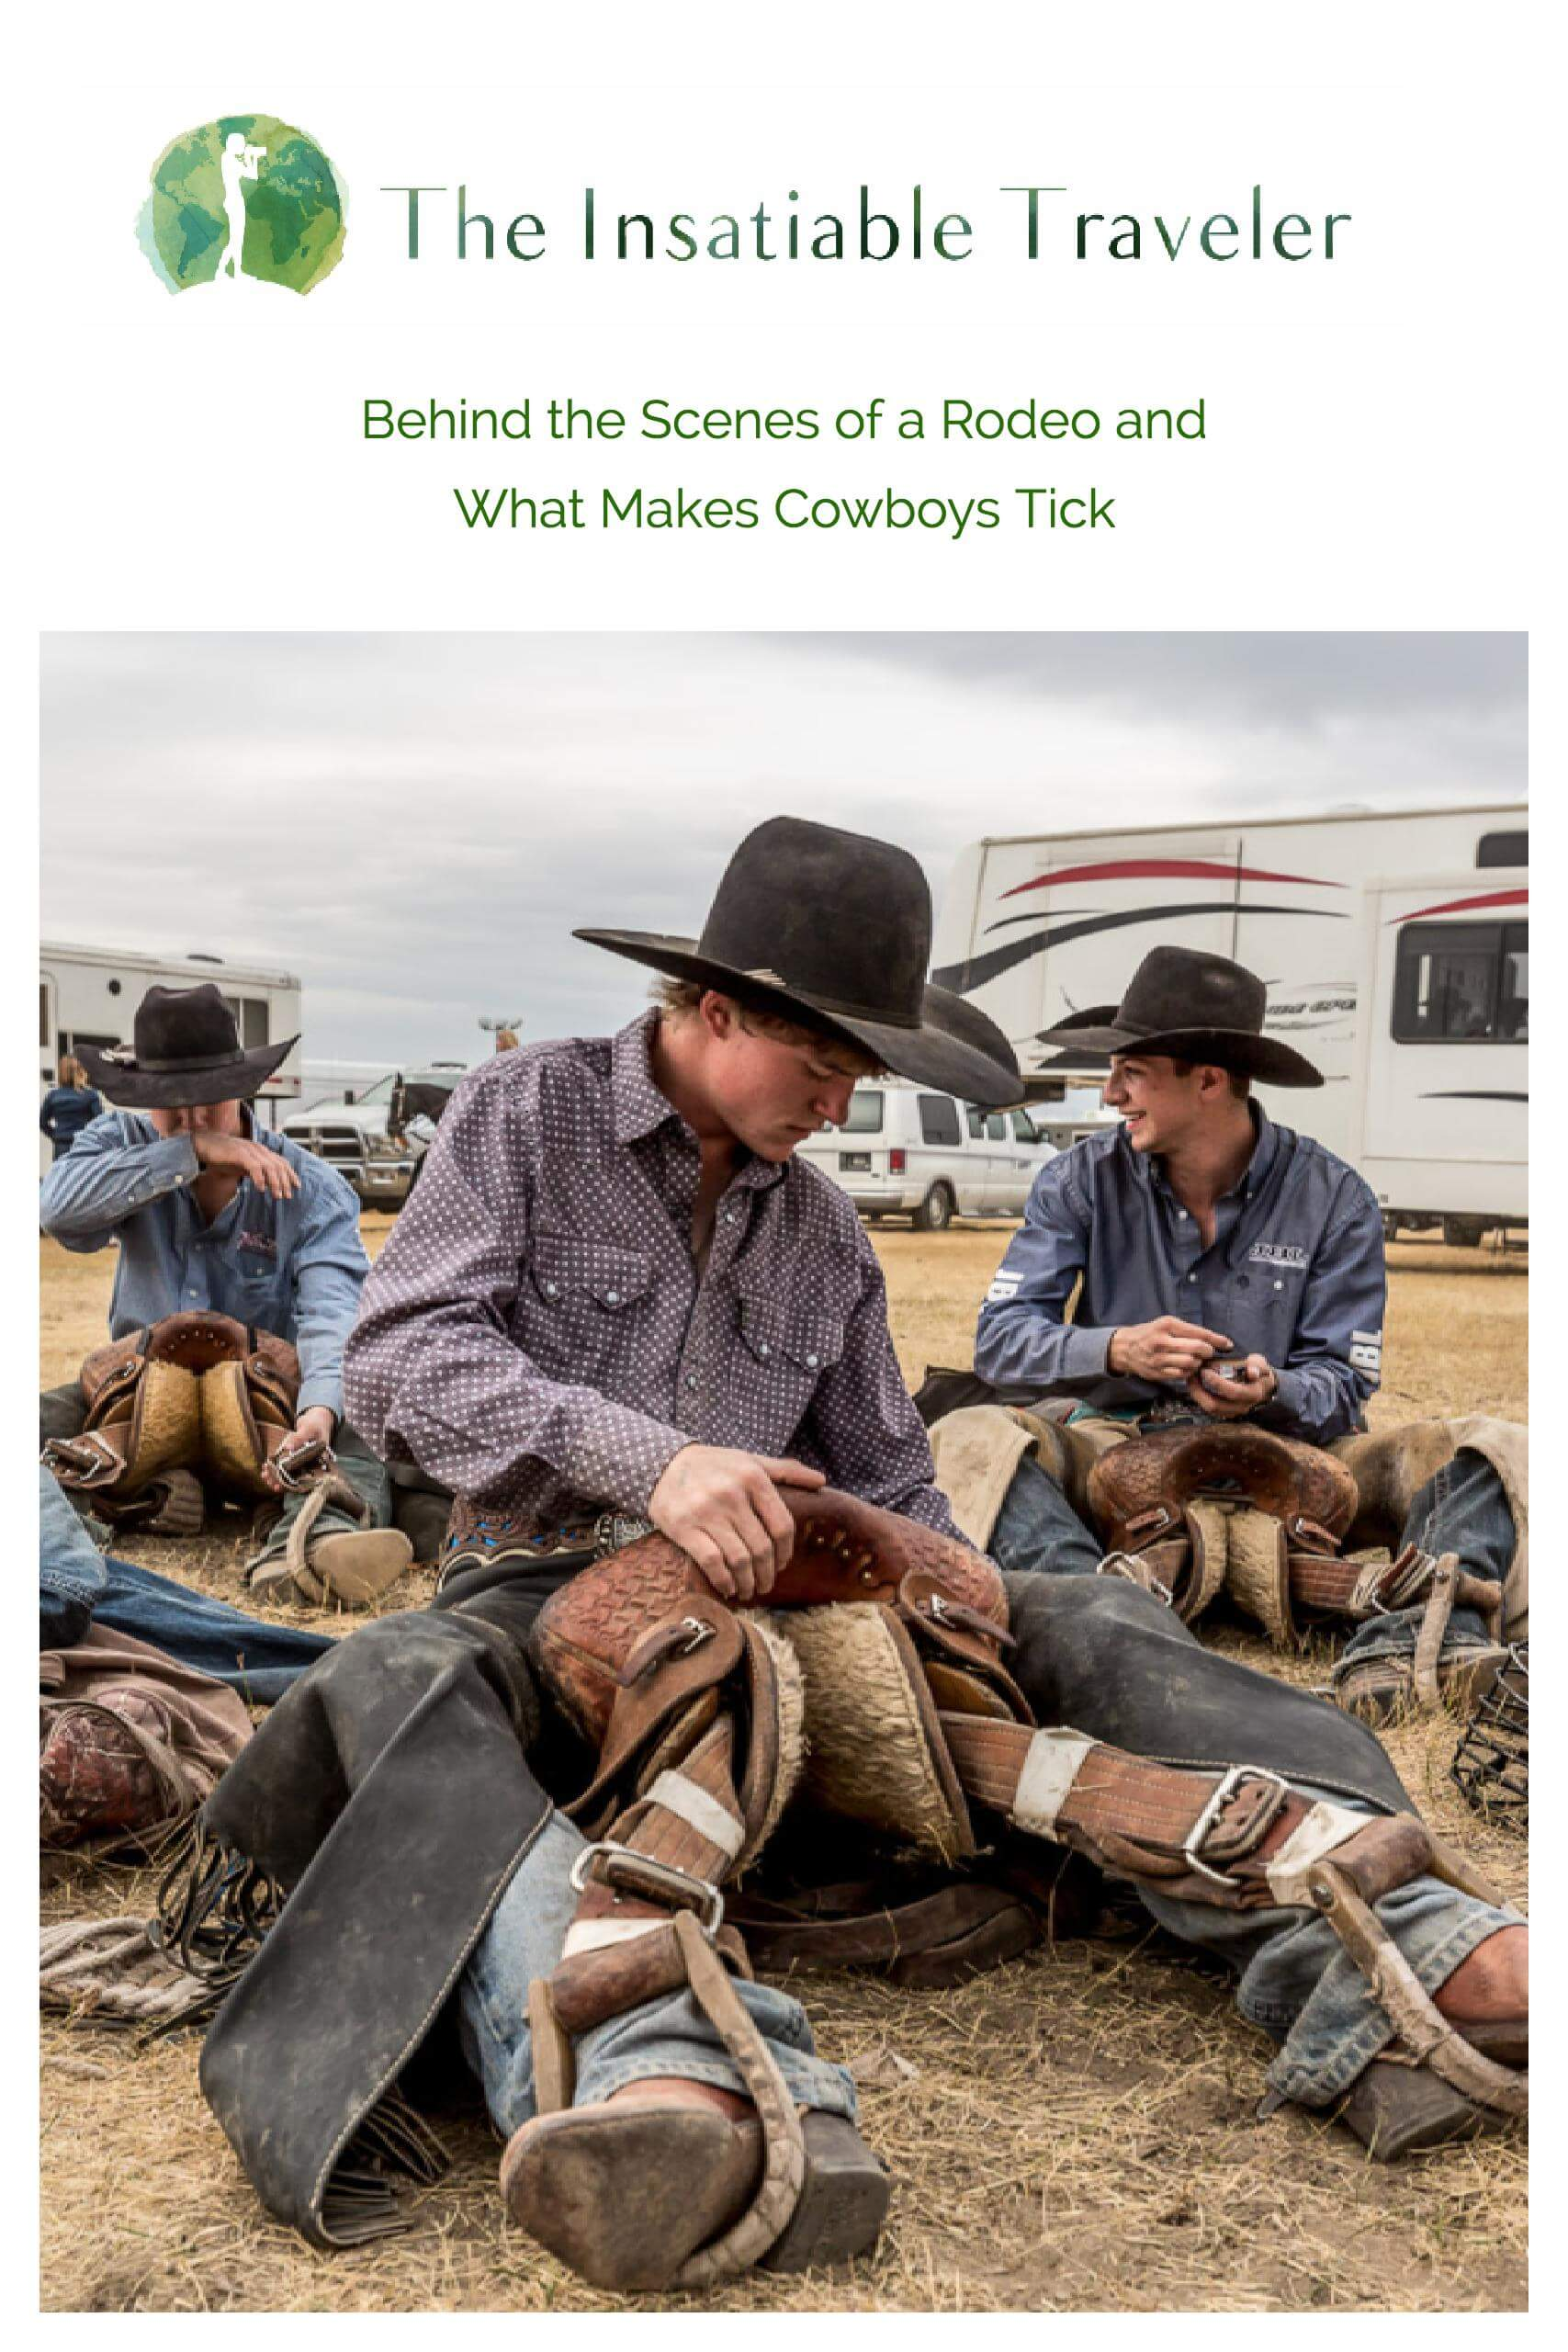 Behind the Scenes of a Rodeo and What Makes Cowboys Tick --Backstage at the Lethbridge Bucking and Barrels Rodeo in the Canadian Badlands, Cowboys tell me about the dangers, the highs, and why they love it.